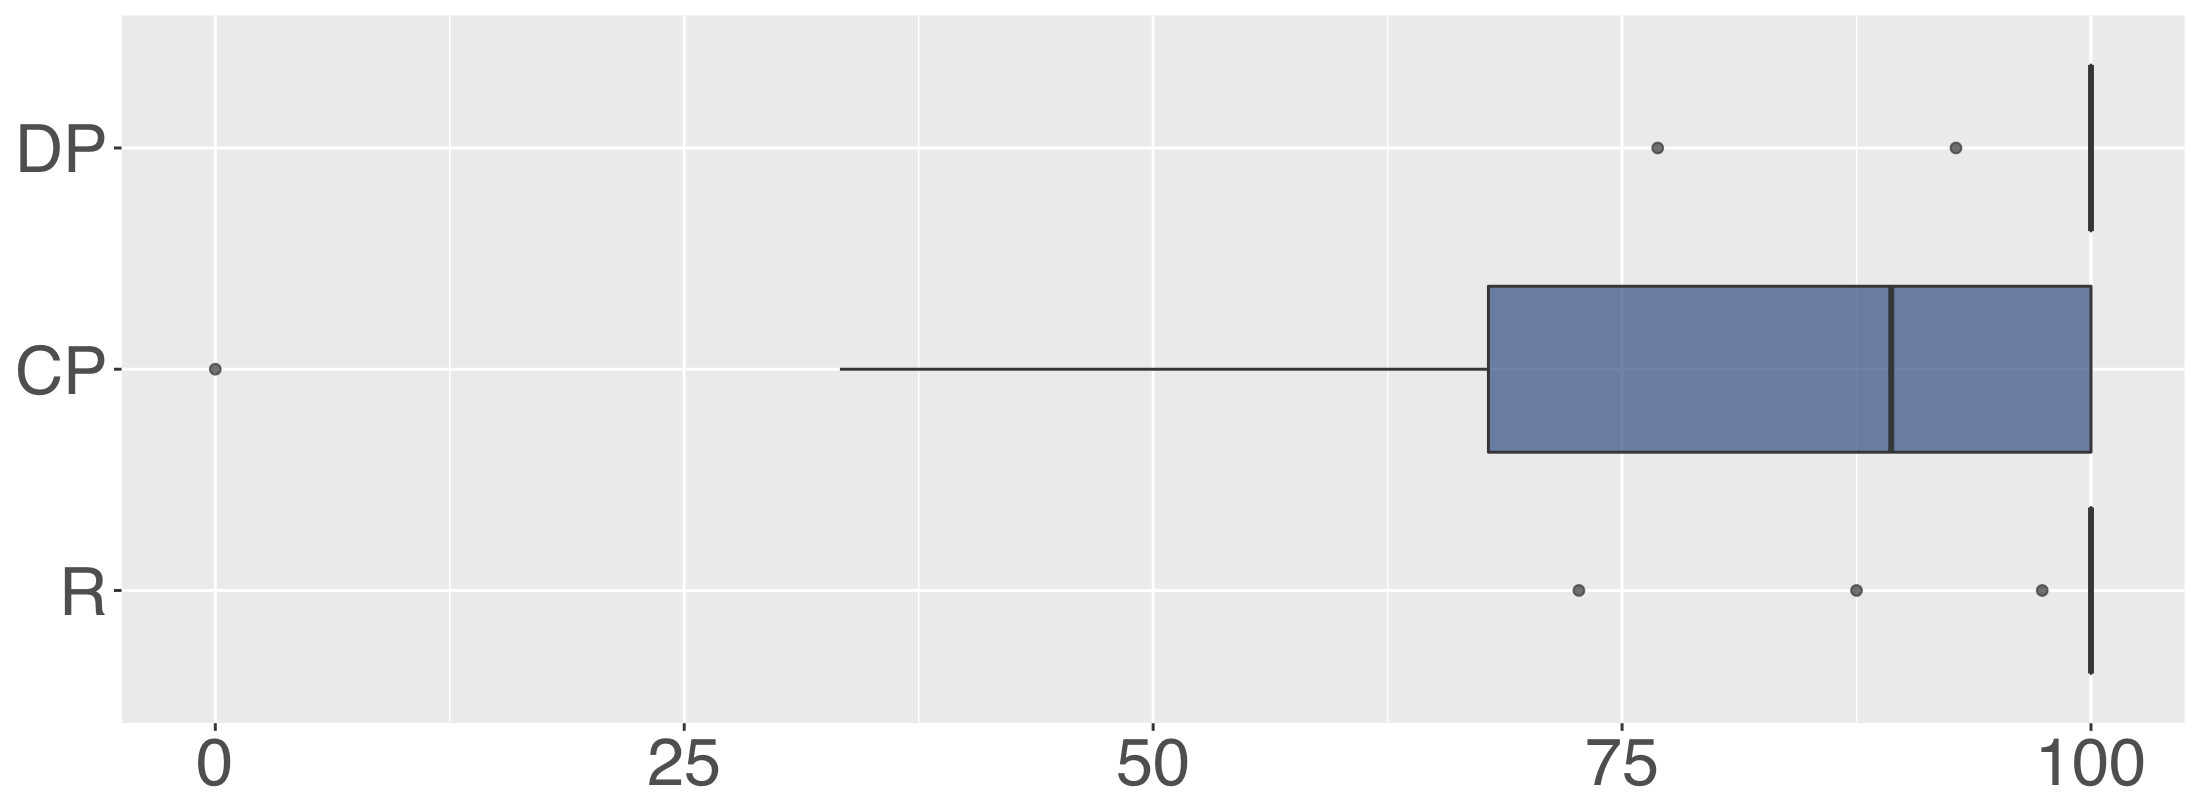 Detection Precision (DP), Classification Precision (CP), and Recall (R) of Gcat during typical use.